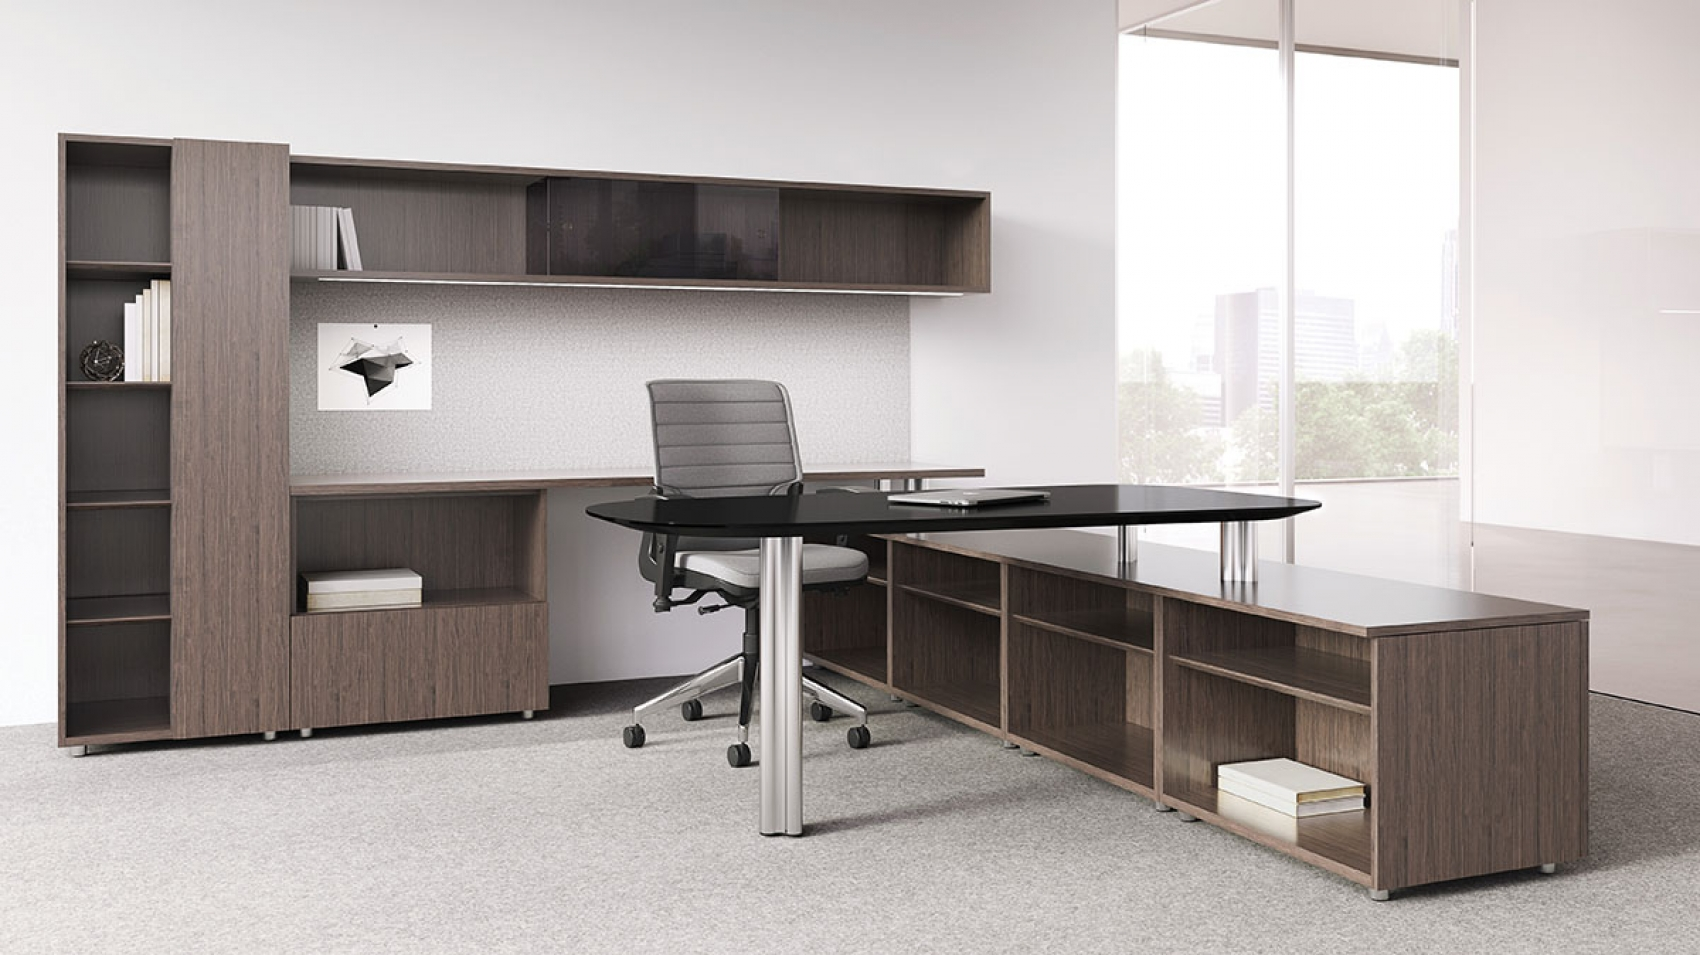 Ofs Office Furniture Property Aptos  Ofs